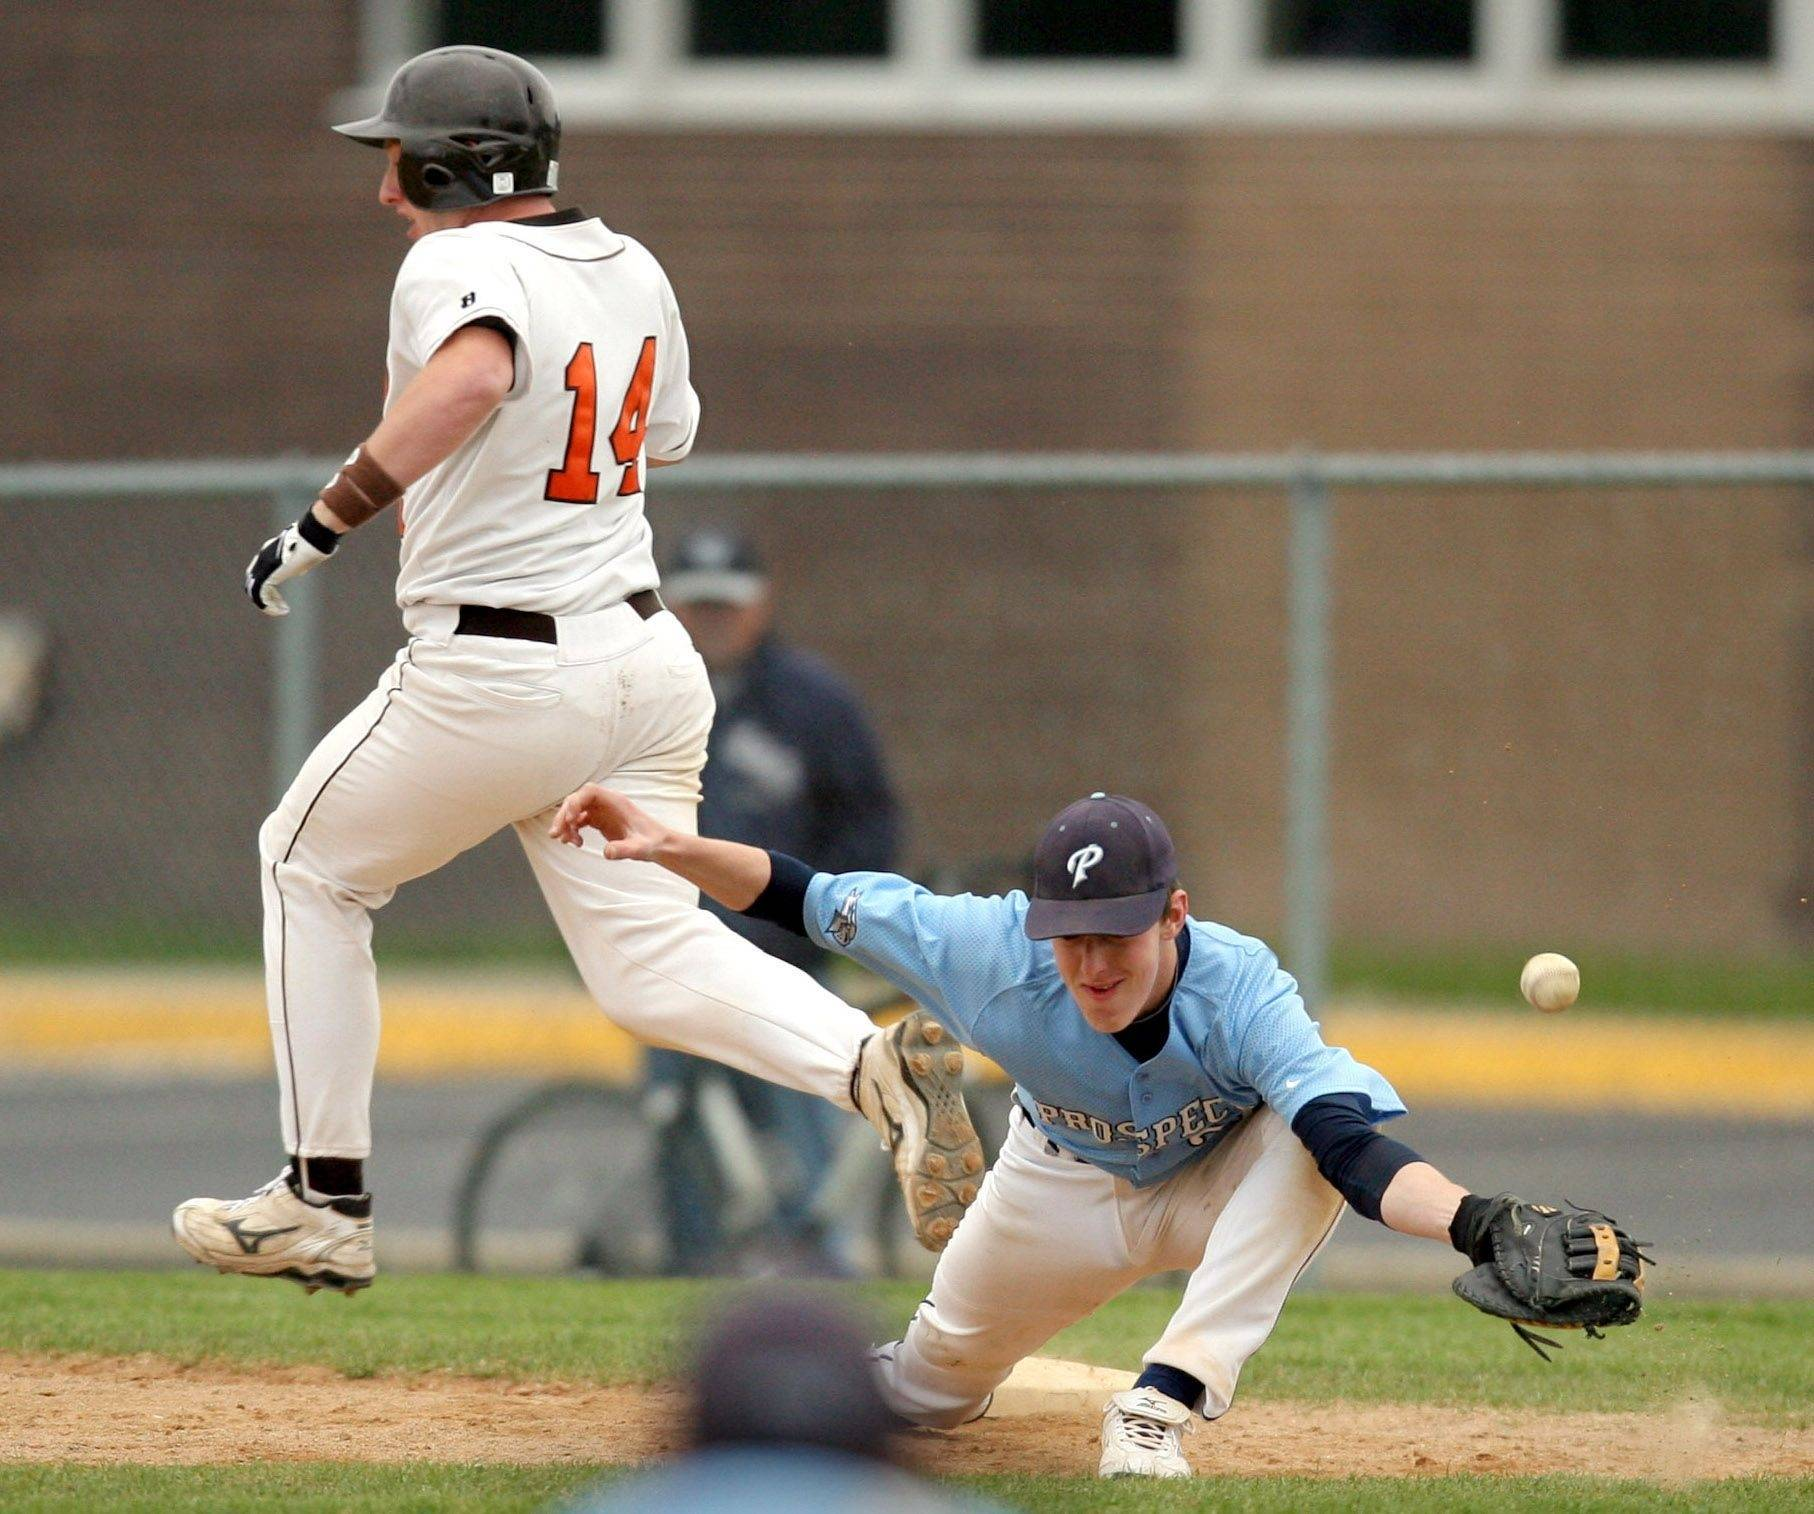 Hersey's Sean Thompson, left, is safe at first as Prospect's Brian Bauer tries to control an errant throw during their game at Hersey High School Monday.